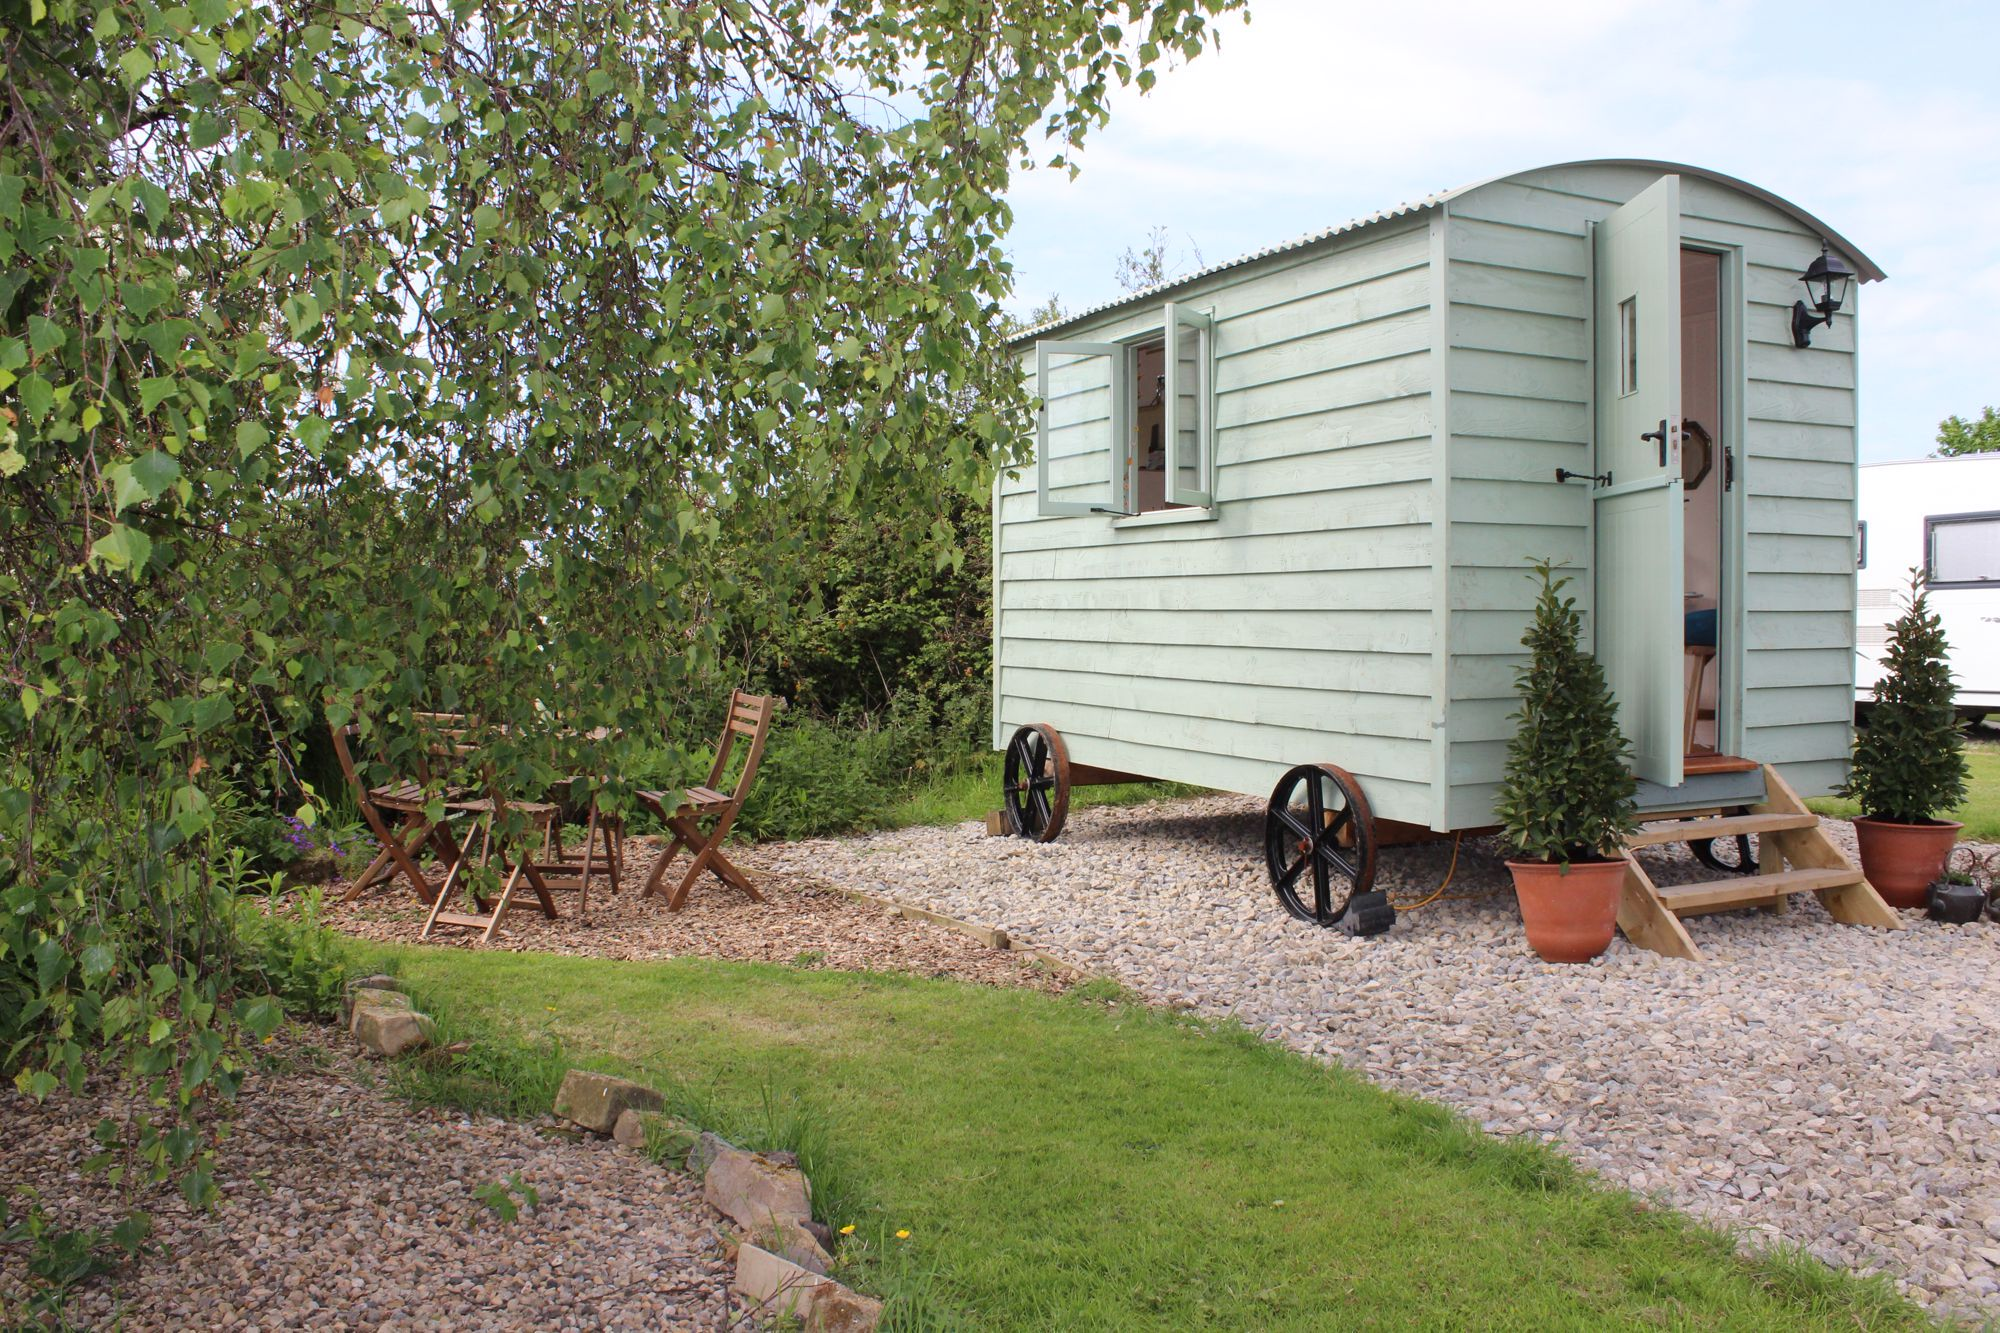 Glamping in the North York Moors National Park